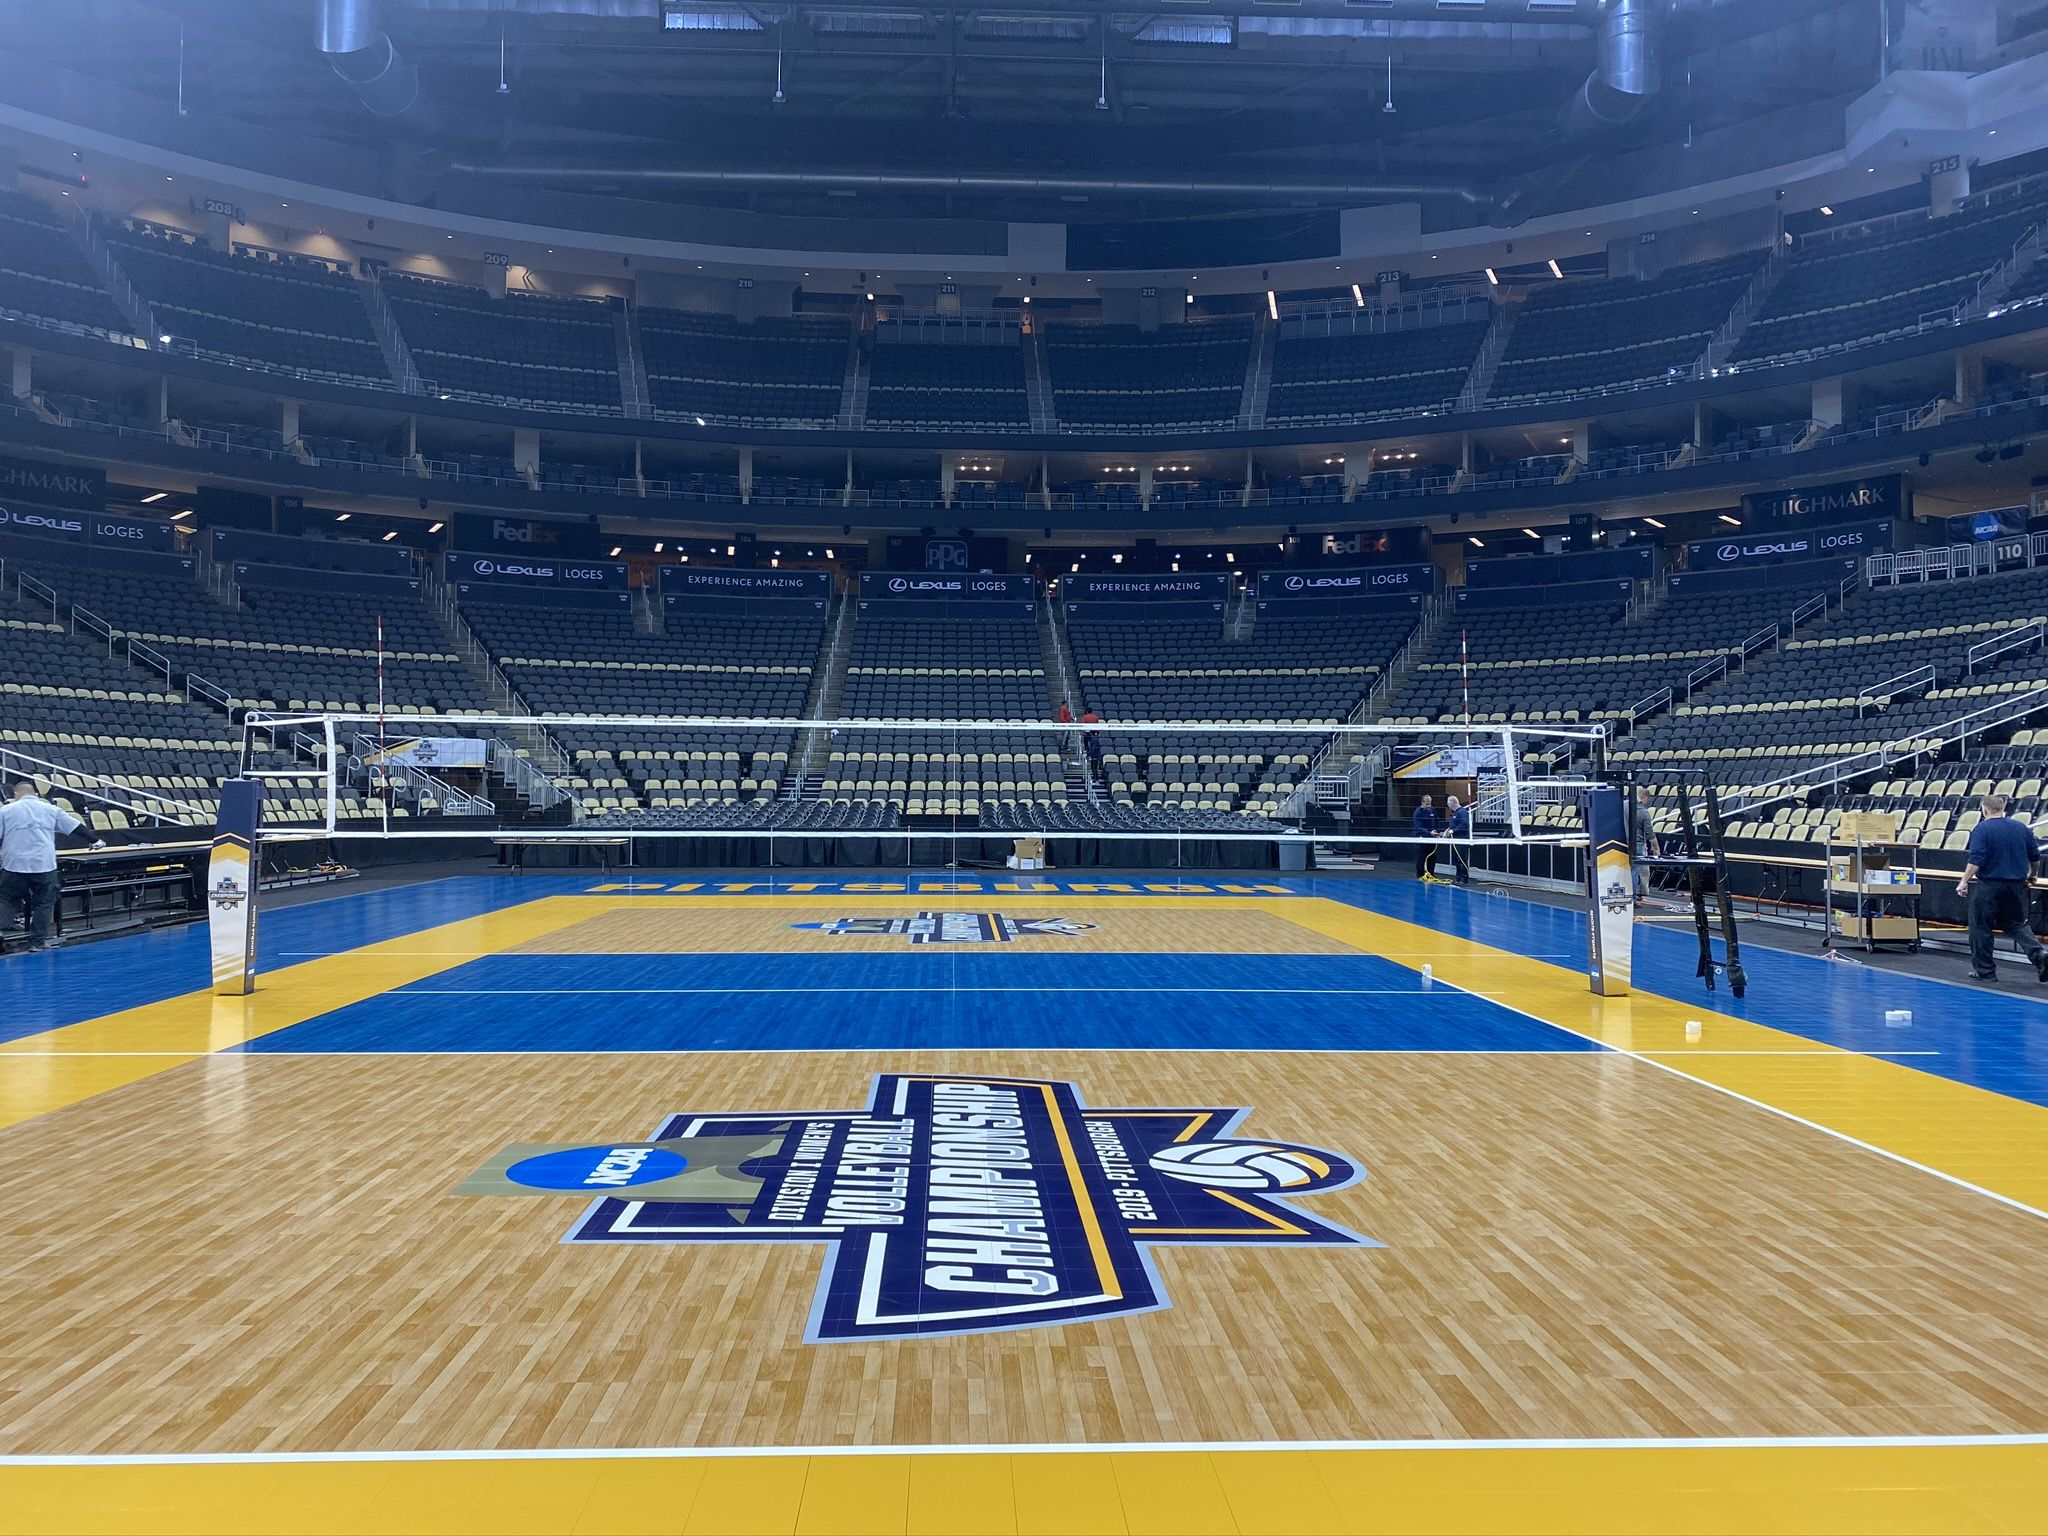 2019 Ncaa Volleyball Championship Volleyball Ppg Ncaa